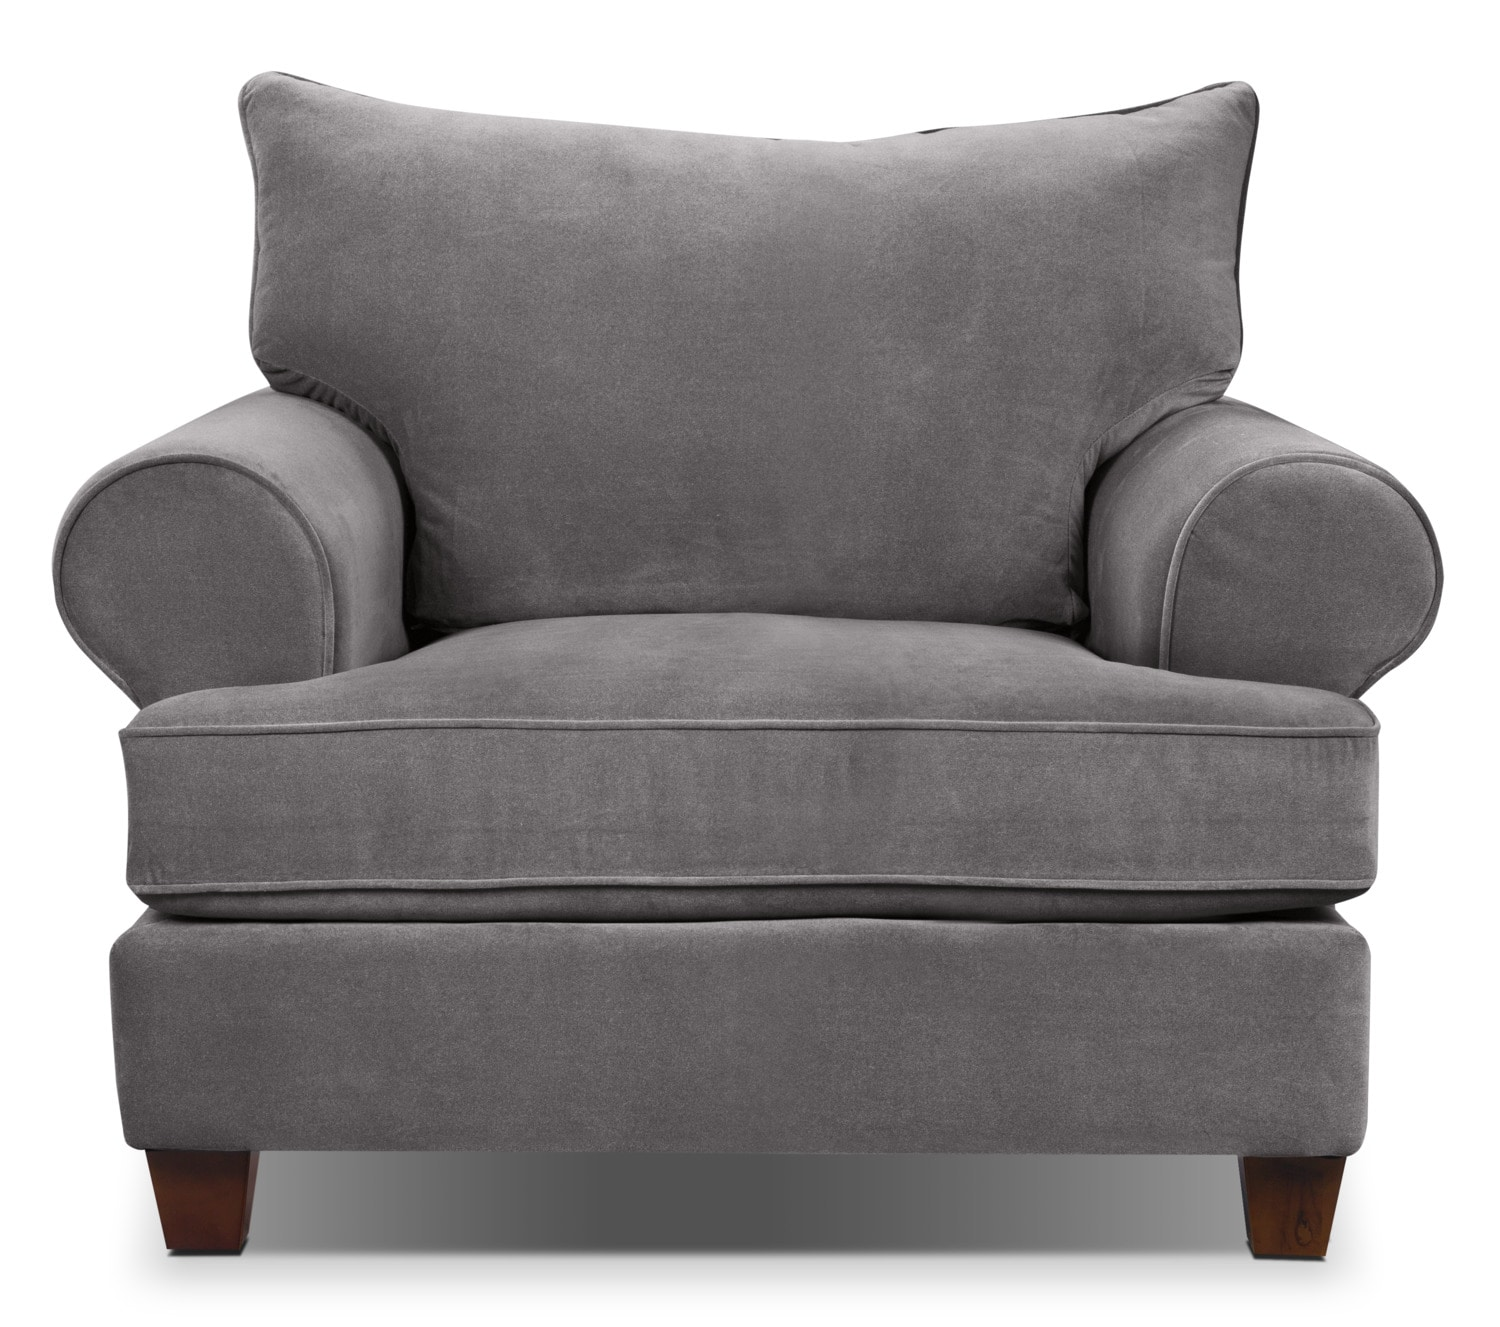 Paige Microsuede Chair - Grey